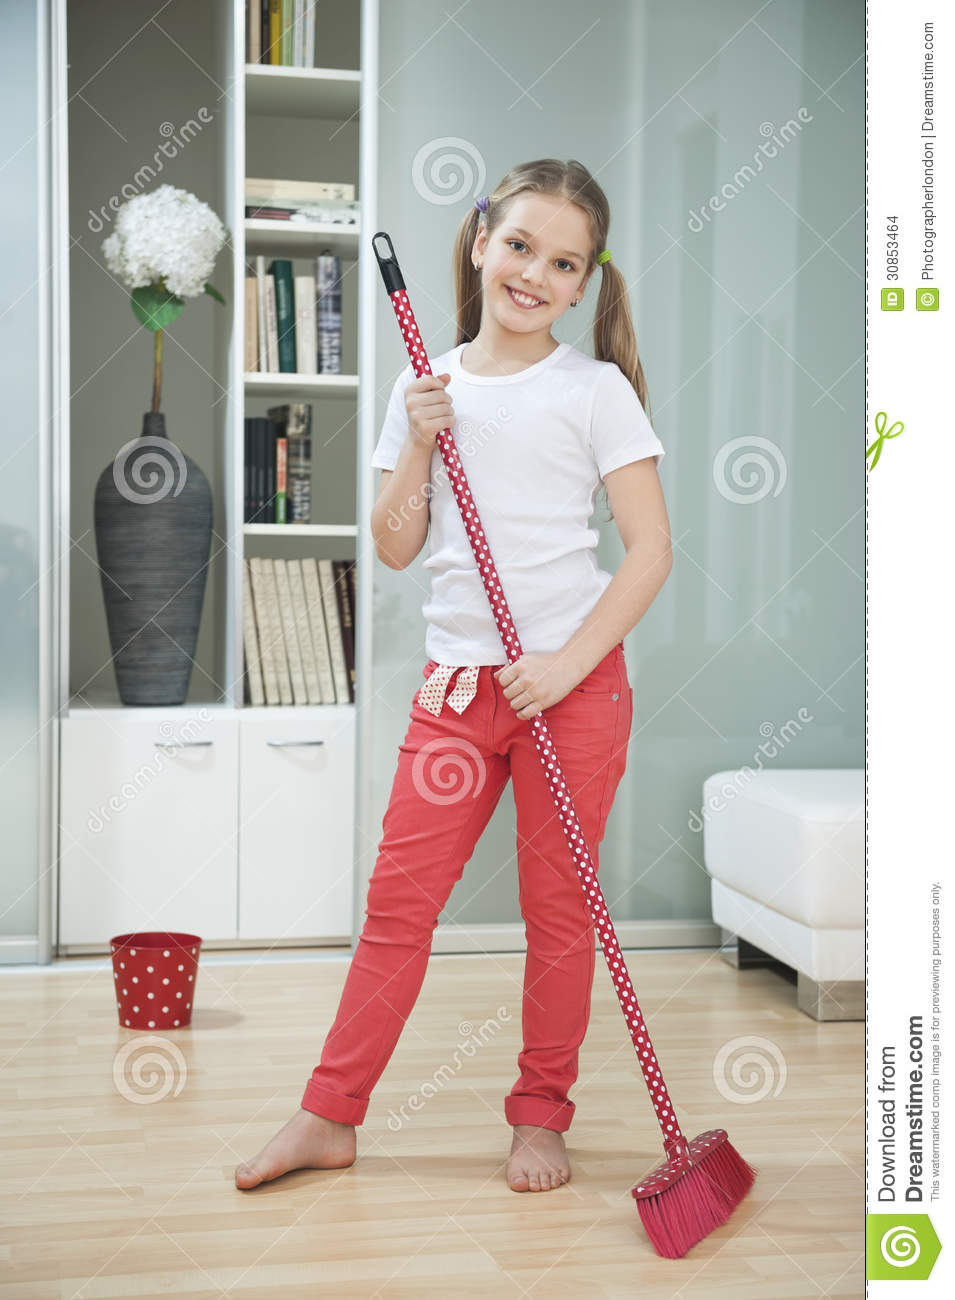 portrait of a young girl sweeping floor with broom stock photo image of housework hardwood 30853464 dreamstime com